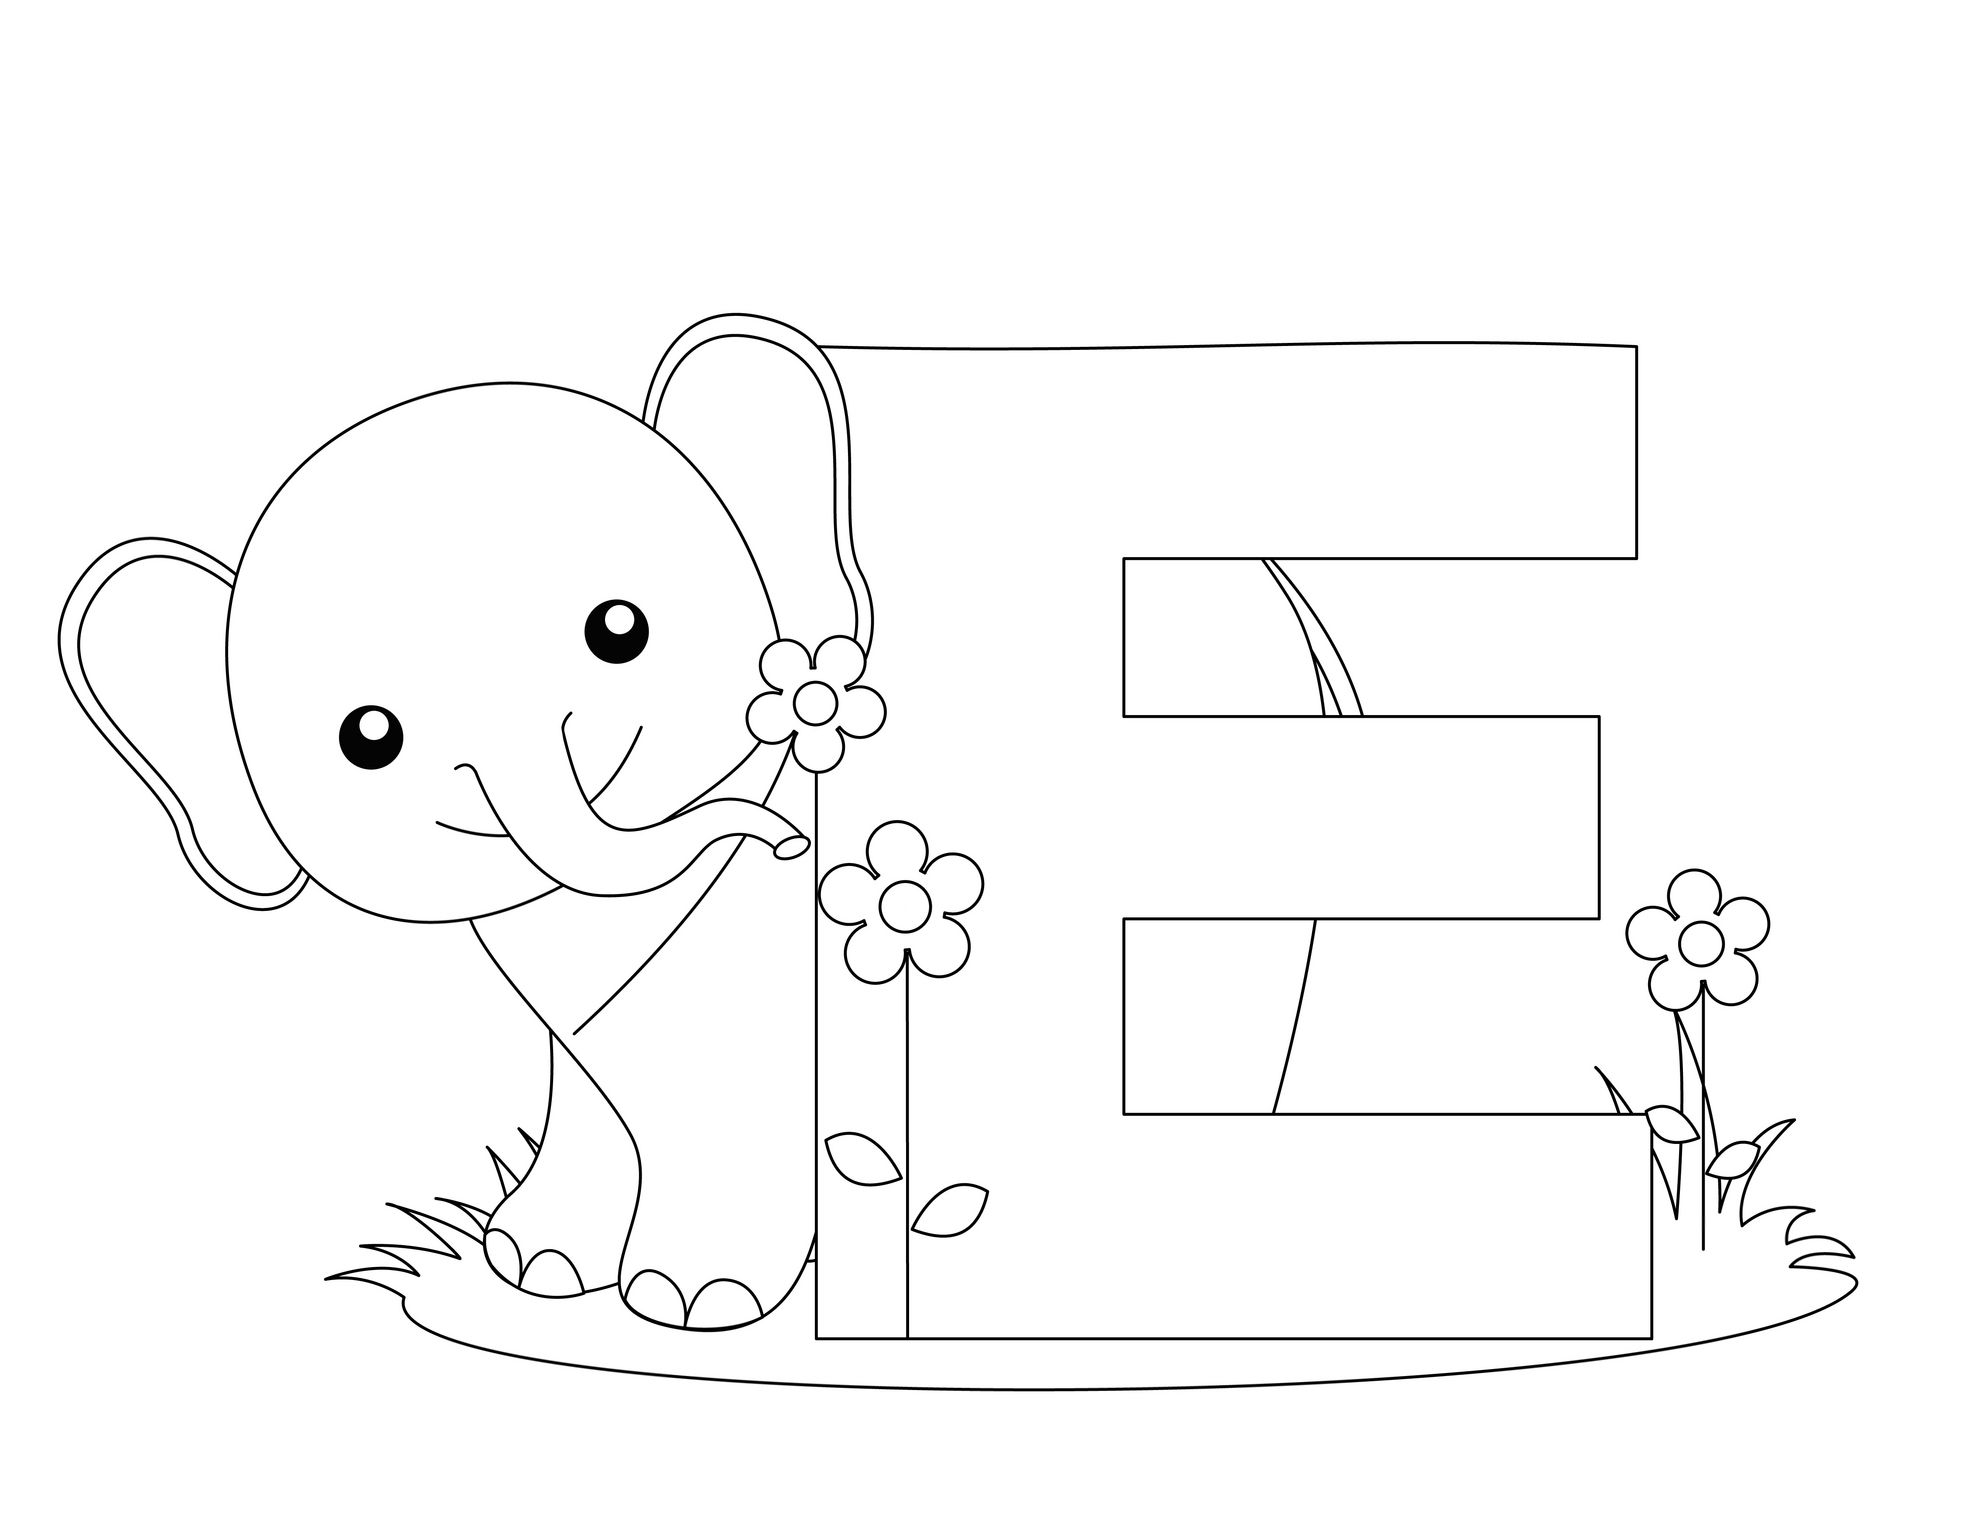 Abc coloring pages for preschoolers - Cool Letter E Coloring Pages Selfcoloringpages Com